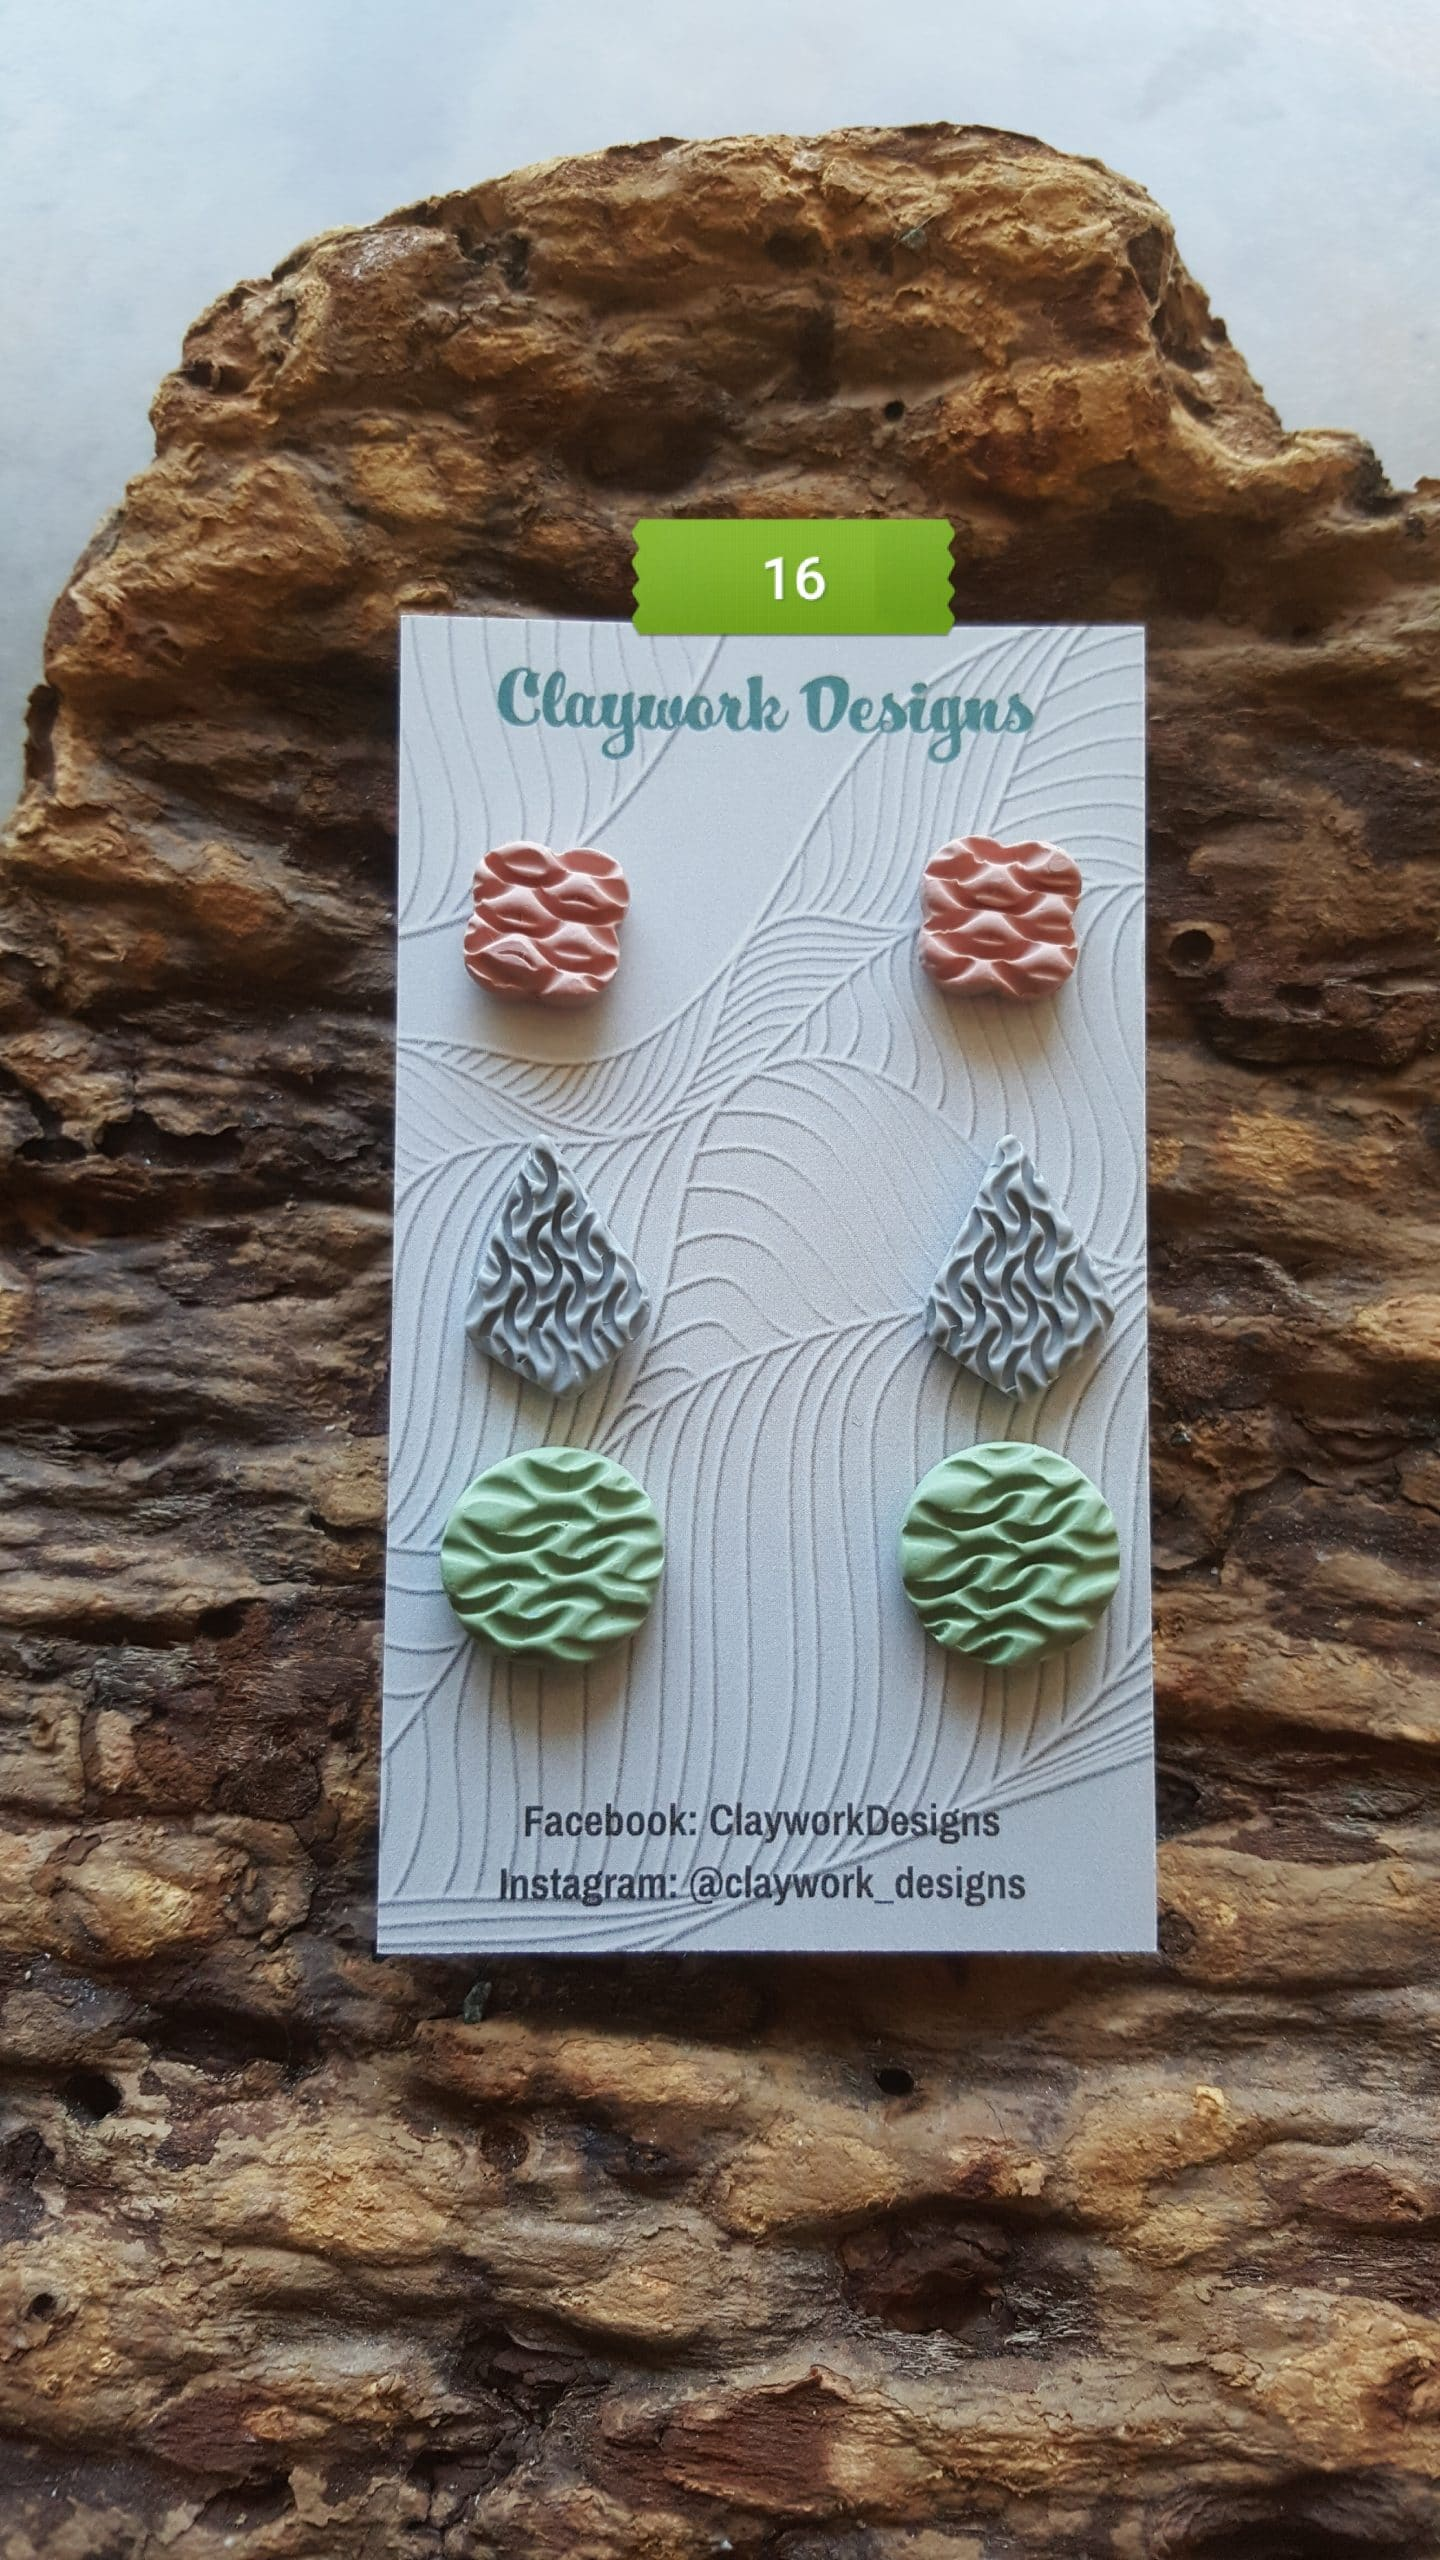 Wirework Designs | Handcrafted chainmaille jewellery and chainmaille products | Chainmaille Weave Stud Earring - 3 Packs | 20210620_172724